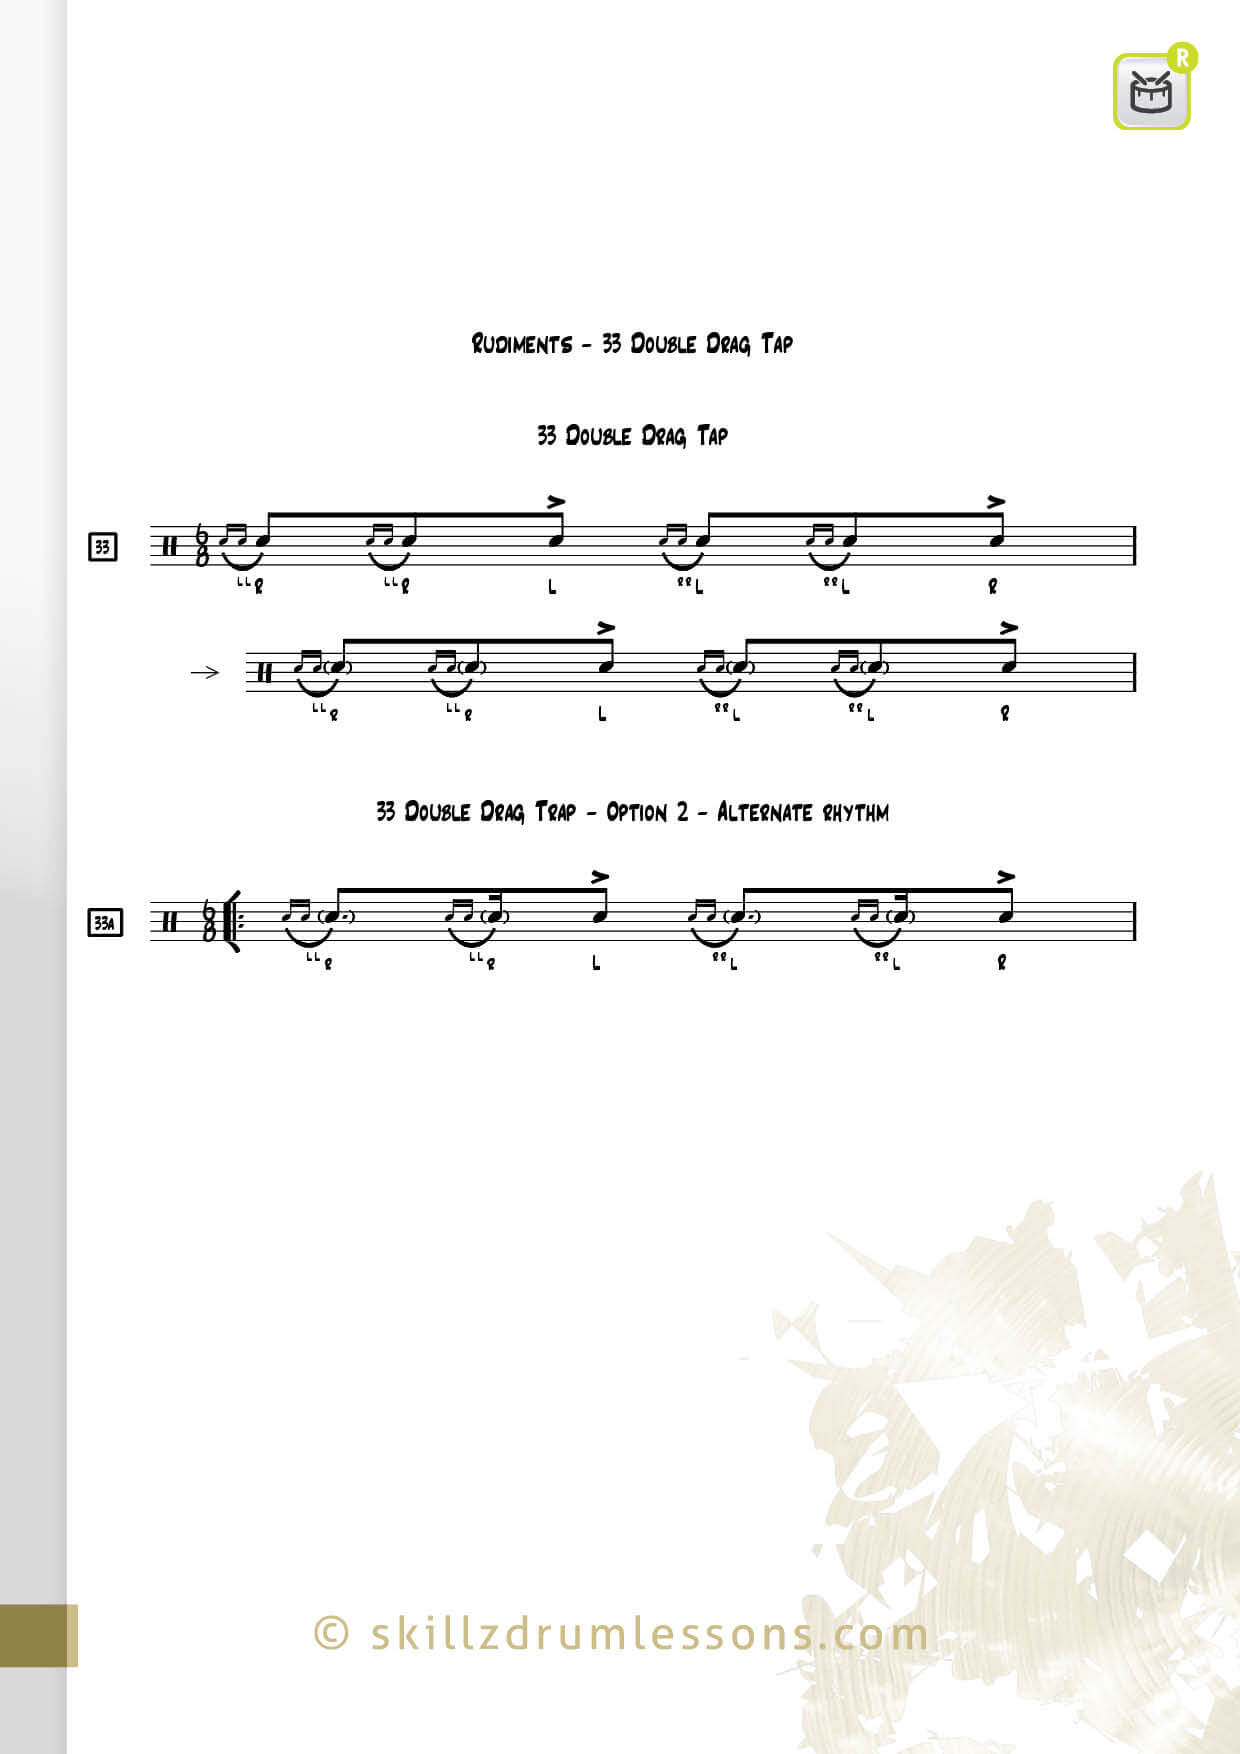 This is an image of the Official 40 Essential P.A.S. Rudiments #33 The Double Drag Tap by Skillz Drum Lessons